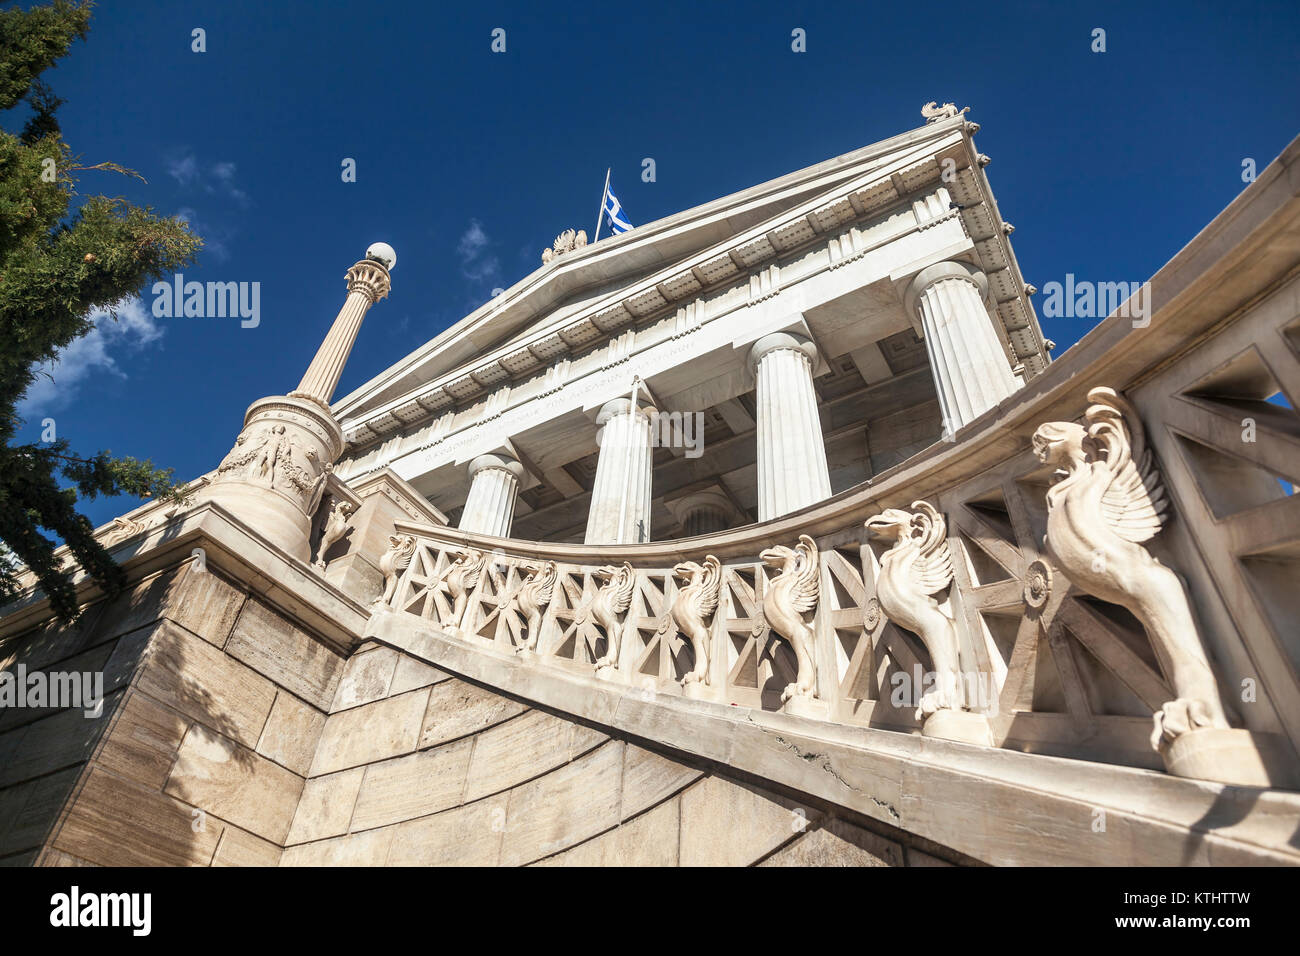 The National Library of Athens, Greece. Stock Photo